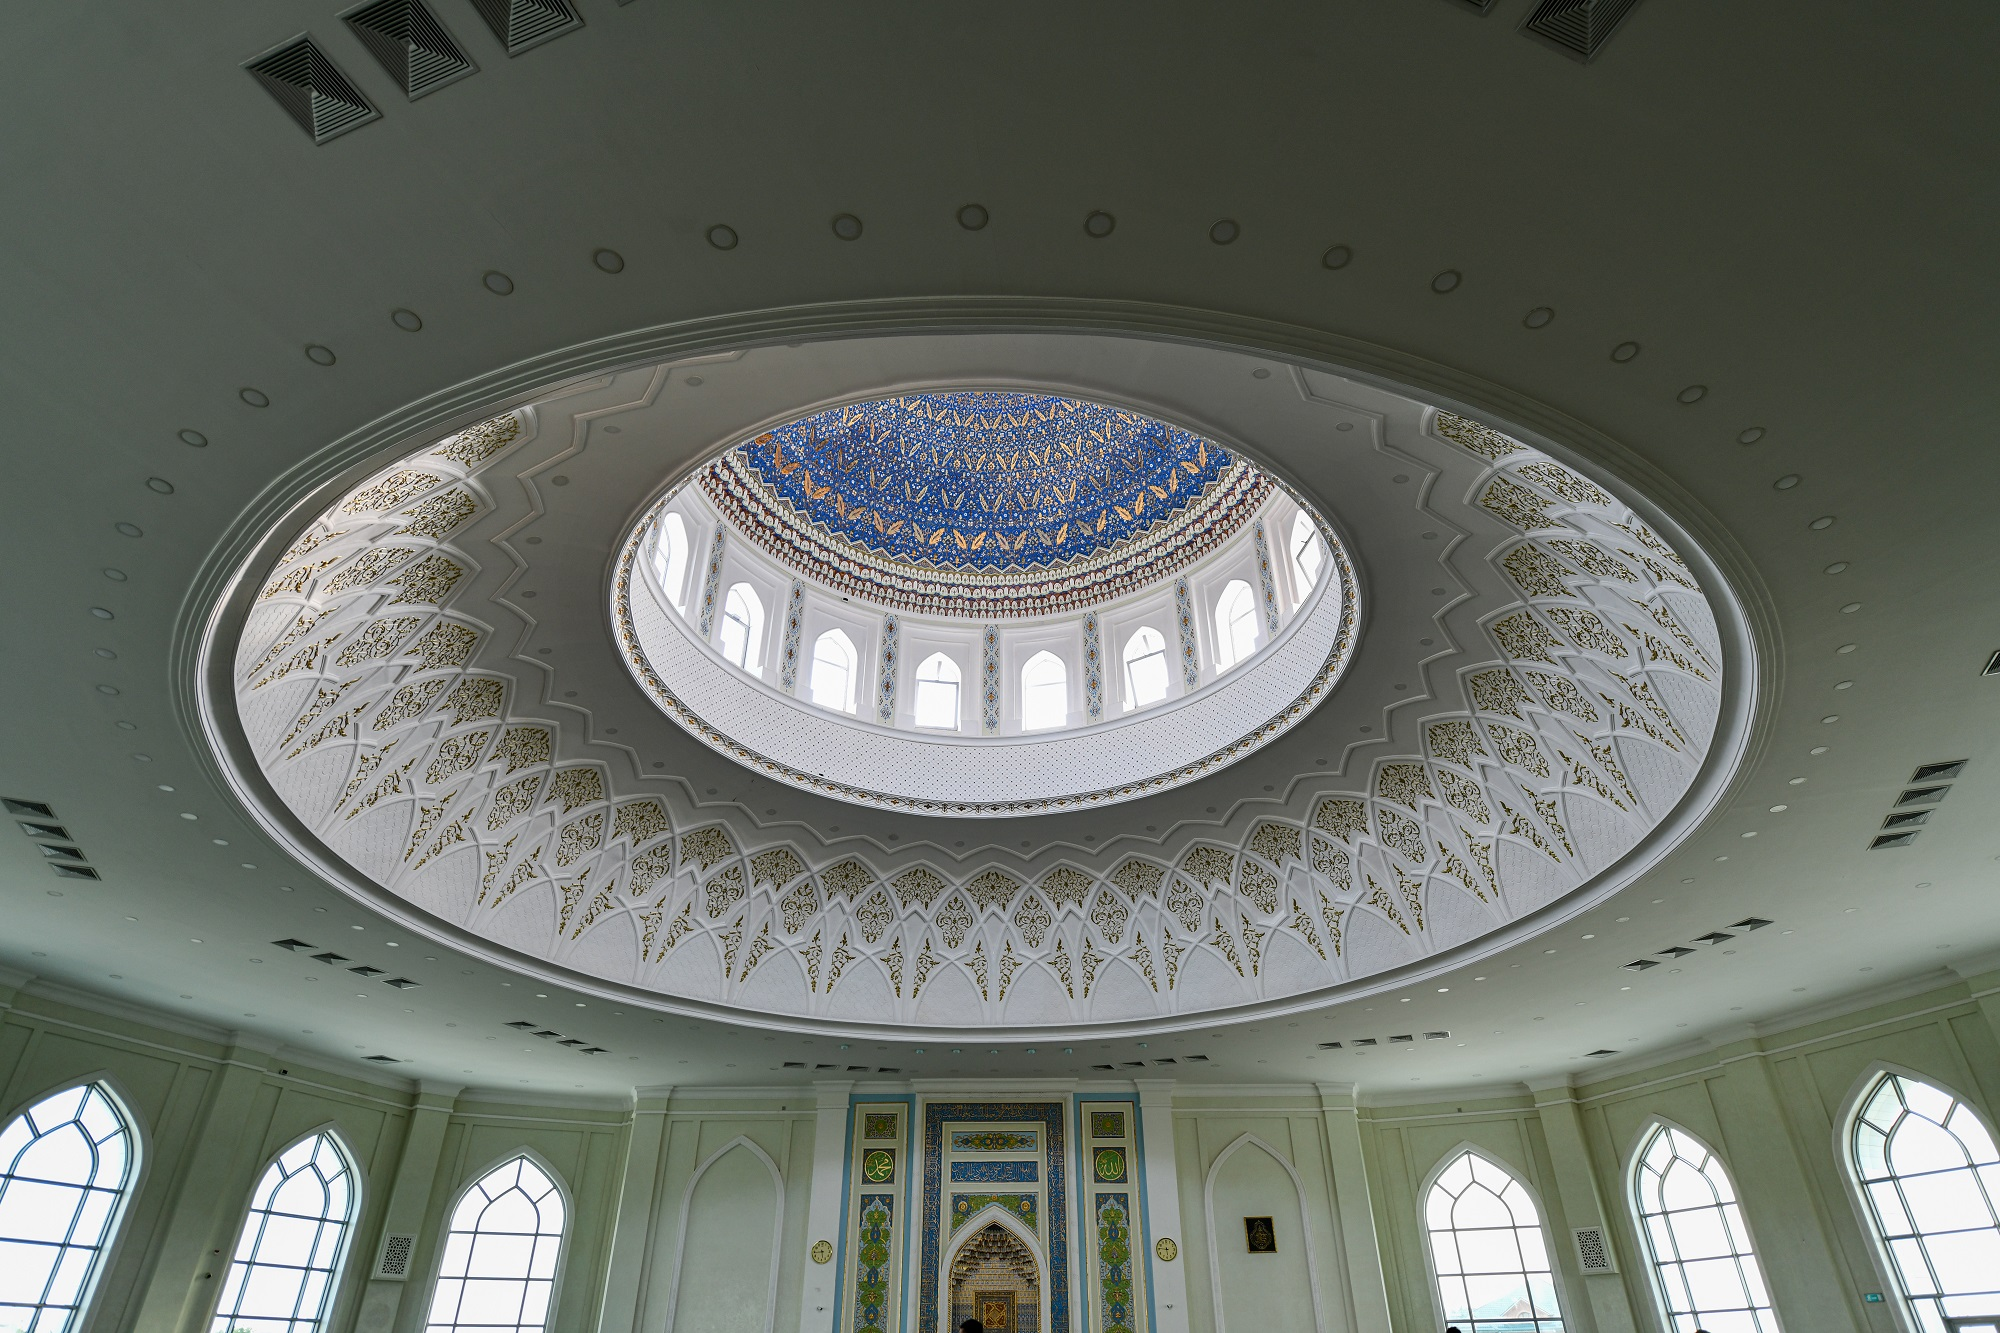 Tashkent, Uzbekistan - Interior of the Minor Mosque in Tashkent, Uzbekistan. It is a relatively new mosque opened on 1 October 2014.